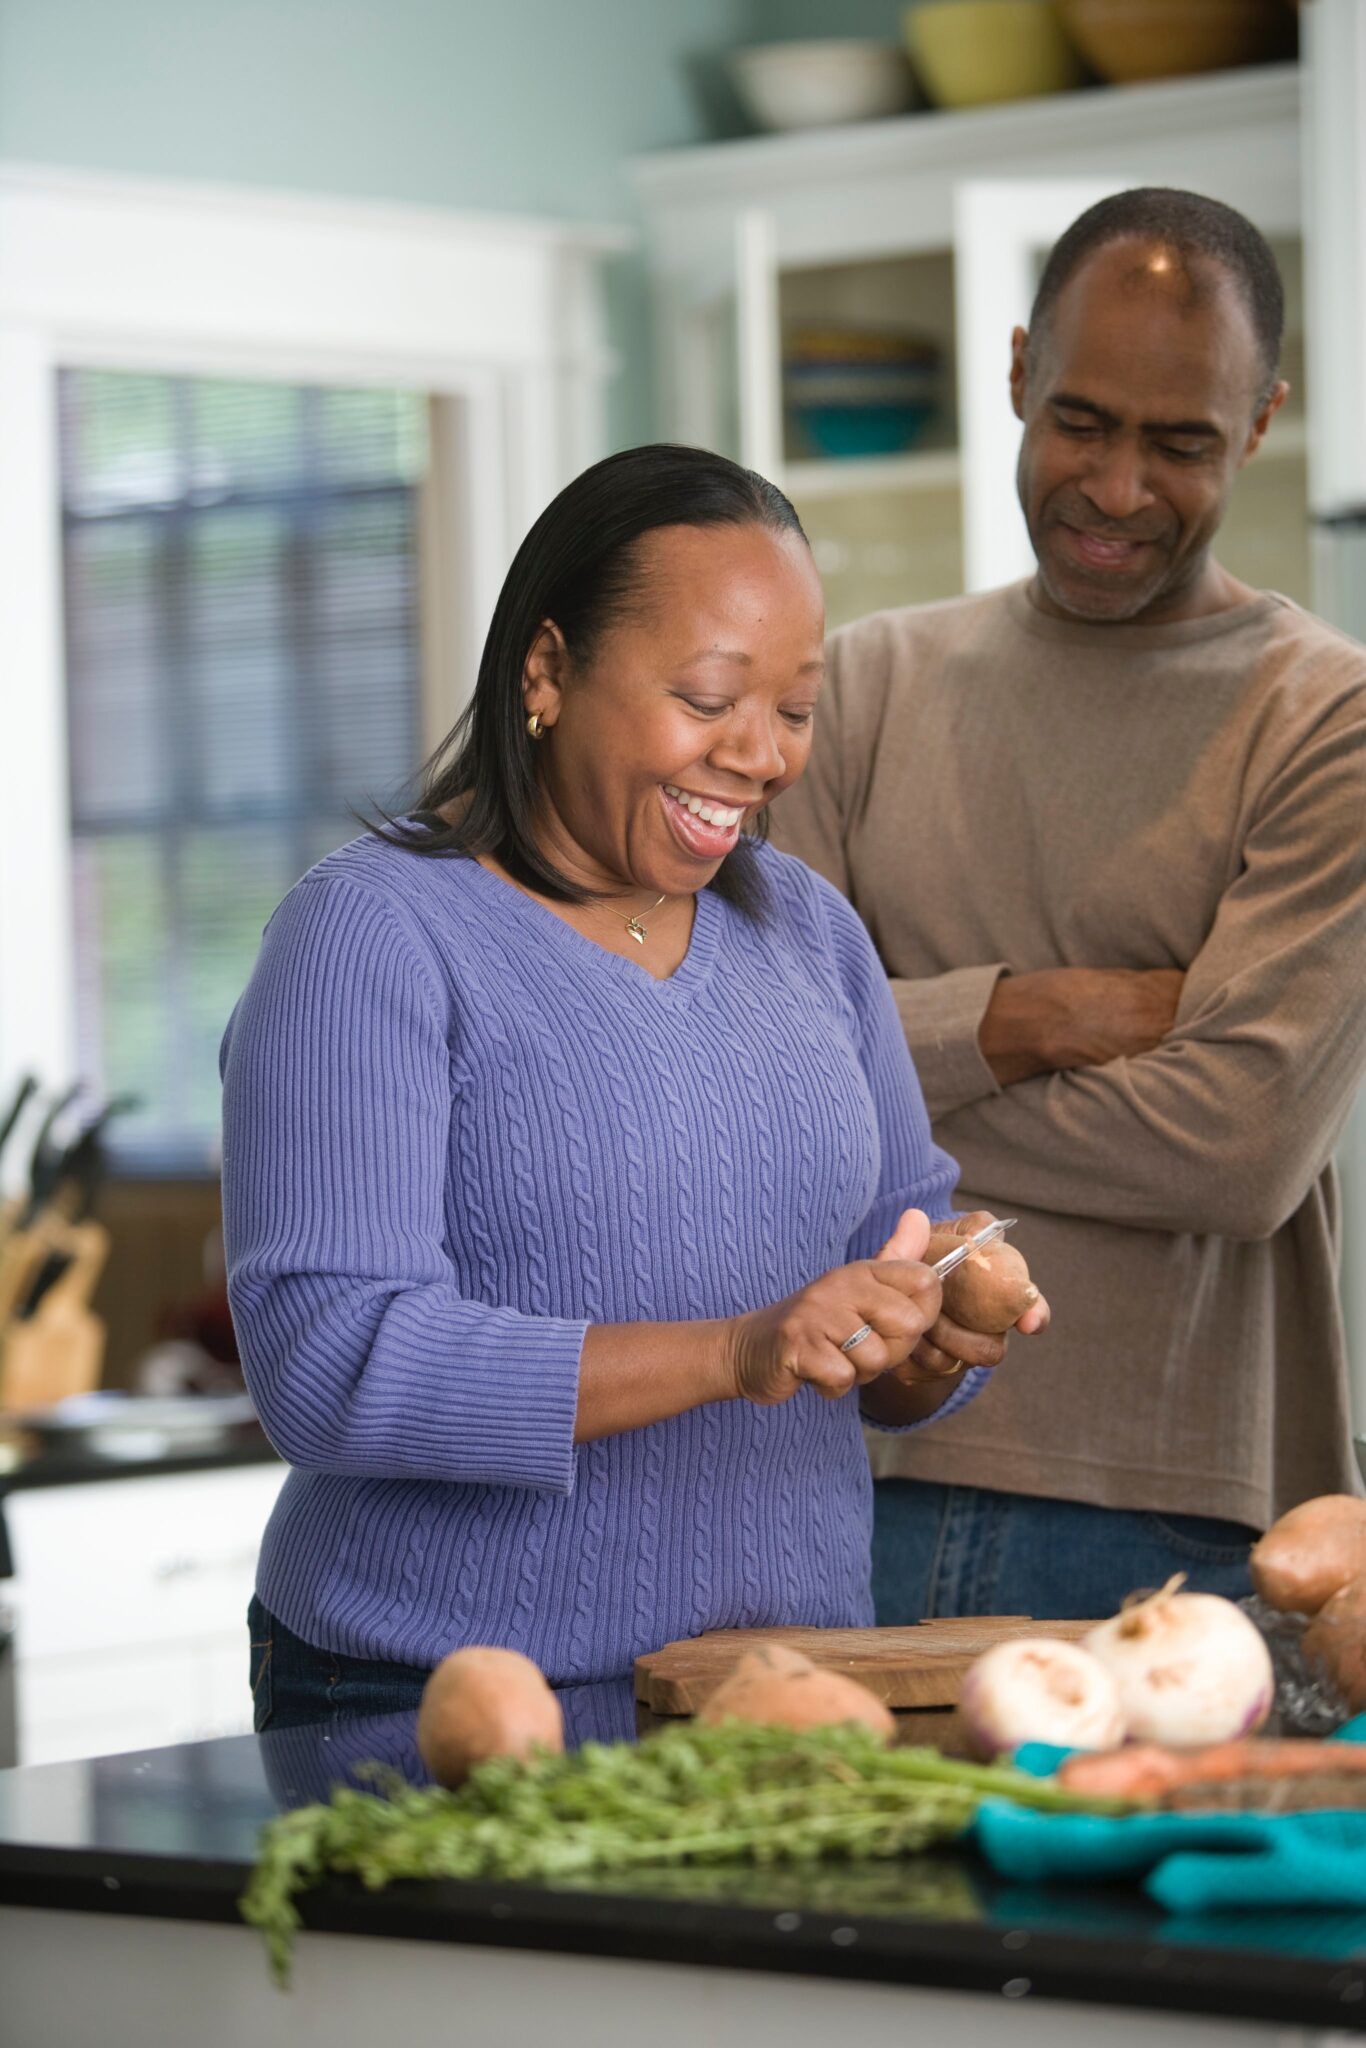 A woman peeling potatoes with man in kitchen.